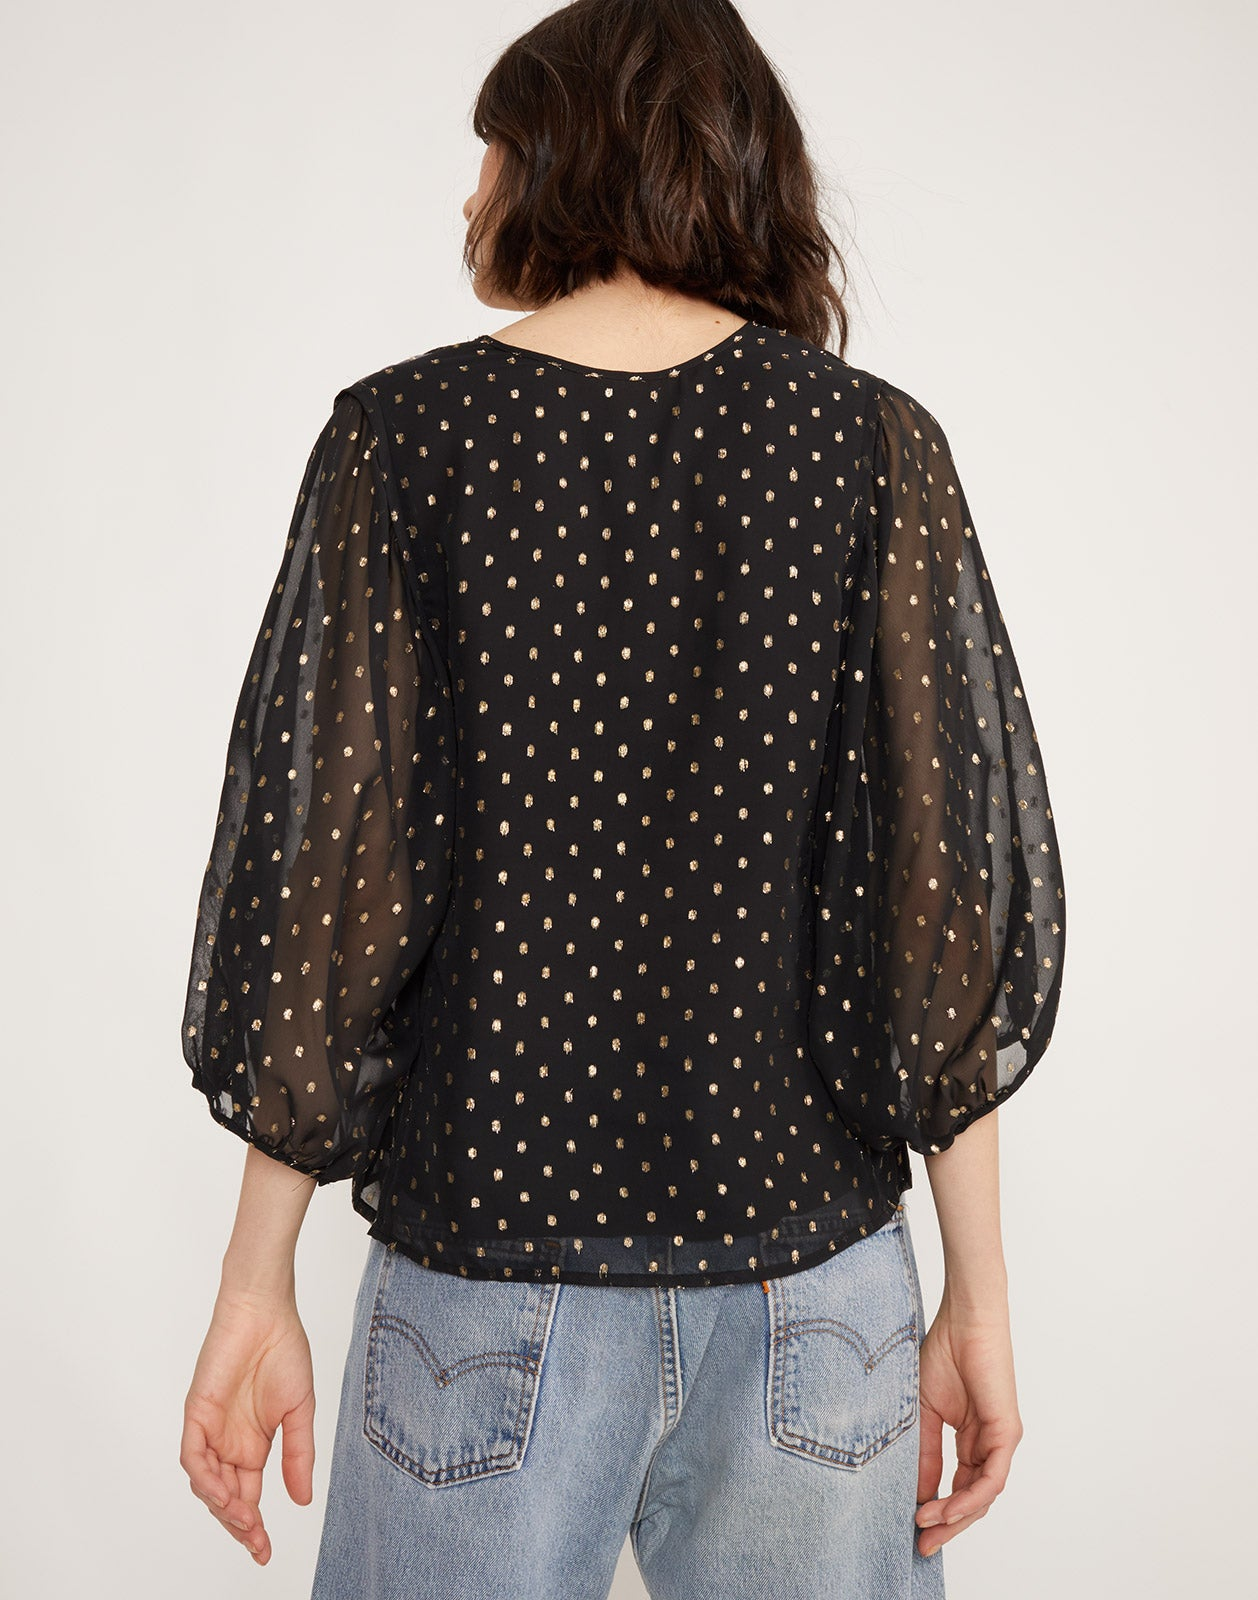 Back view of Inverness Metallic Fish Top with square neckline and sheer sleeves